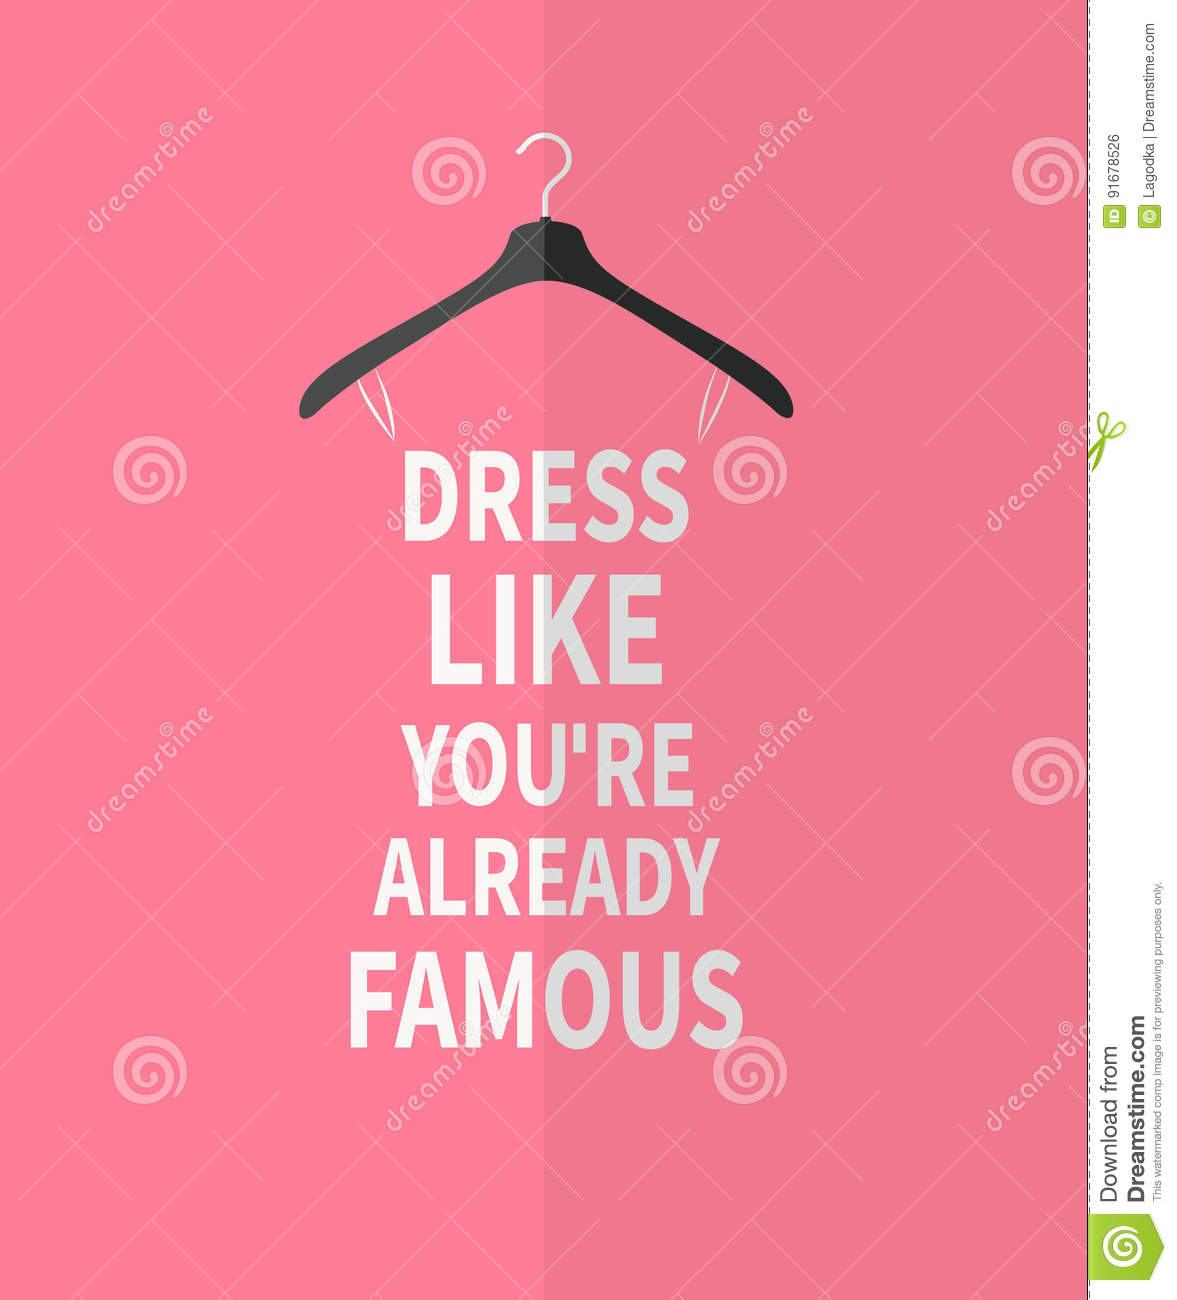 Quotes For Women Women Fashion Stylized Dress From Quotes Stock Vector  Image